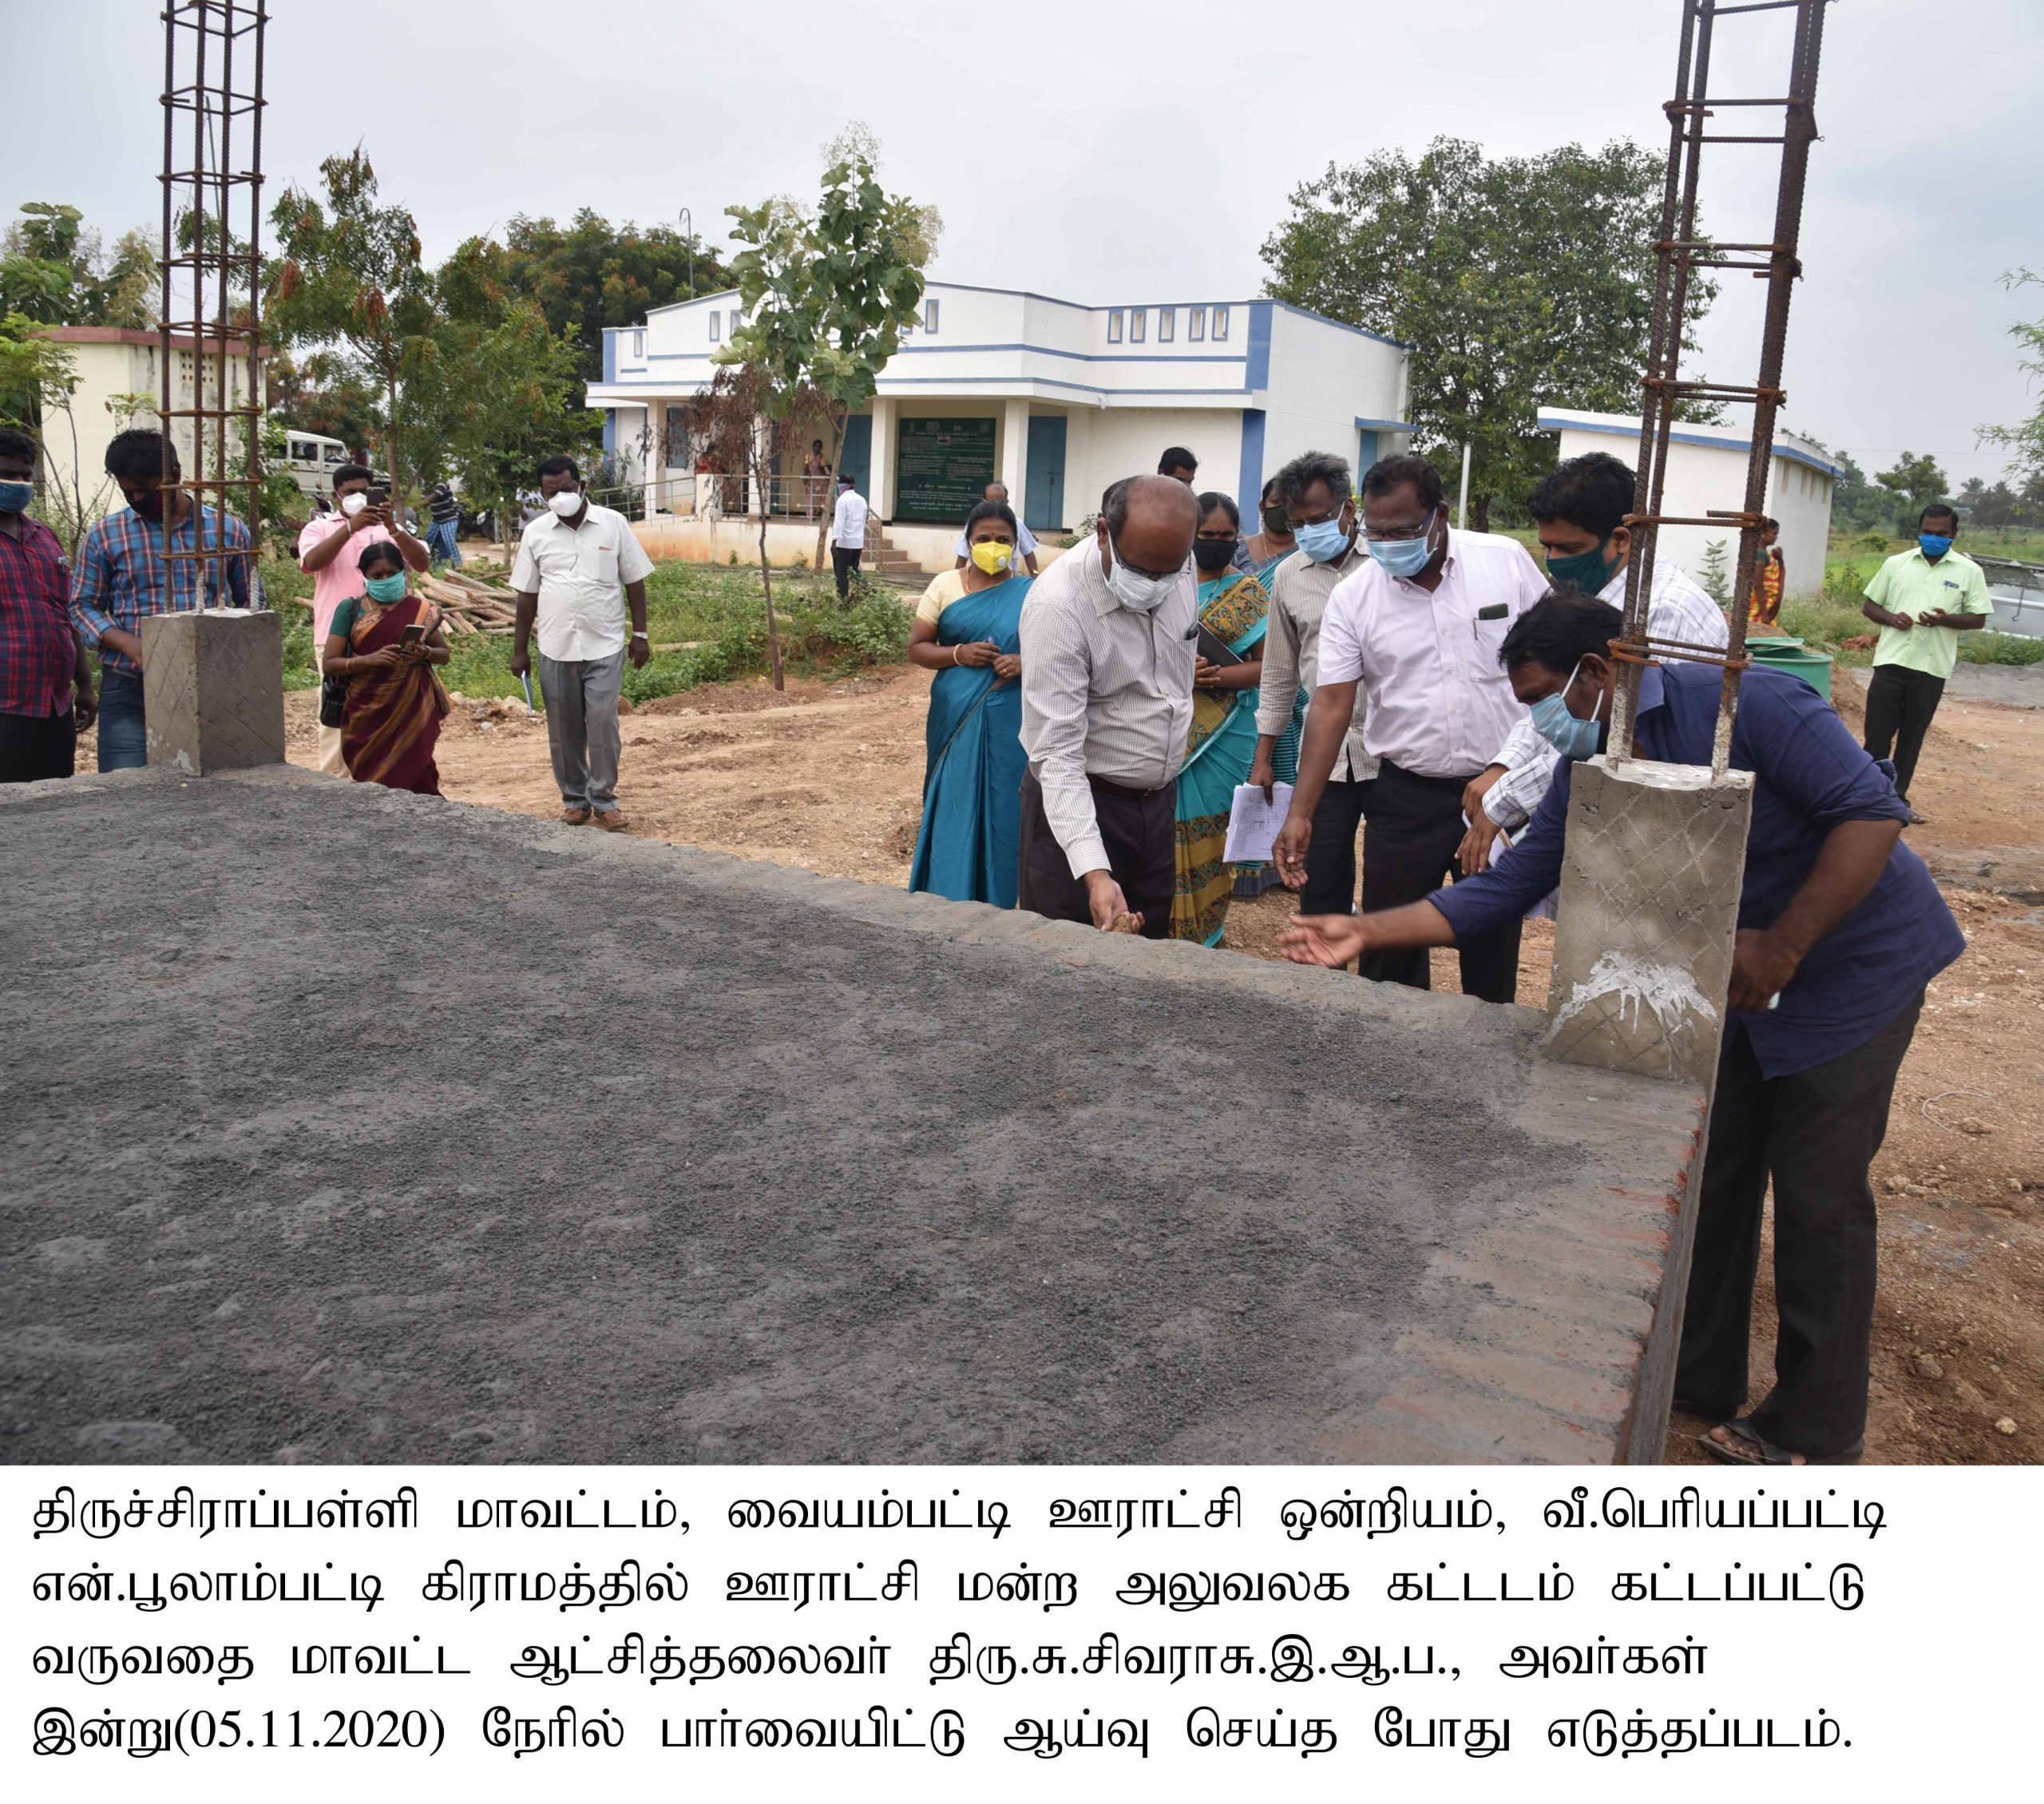 District Collector Inspected the Rural Development Dept. development activities at Vaiyampatti Union on 05.11.2020